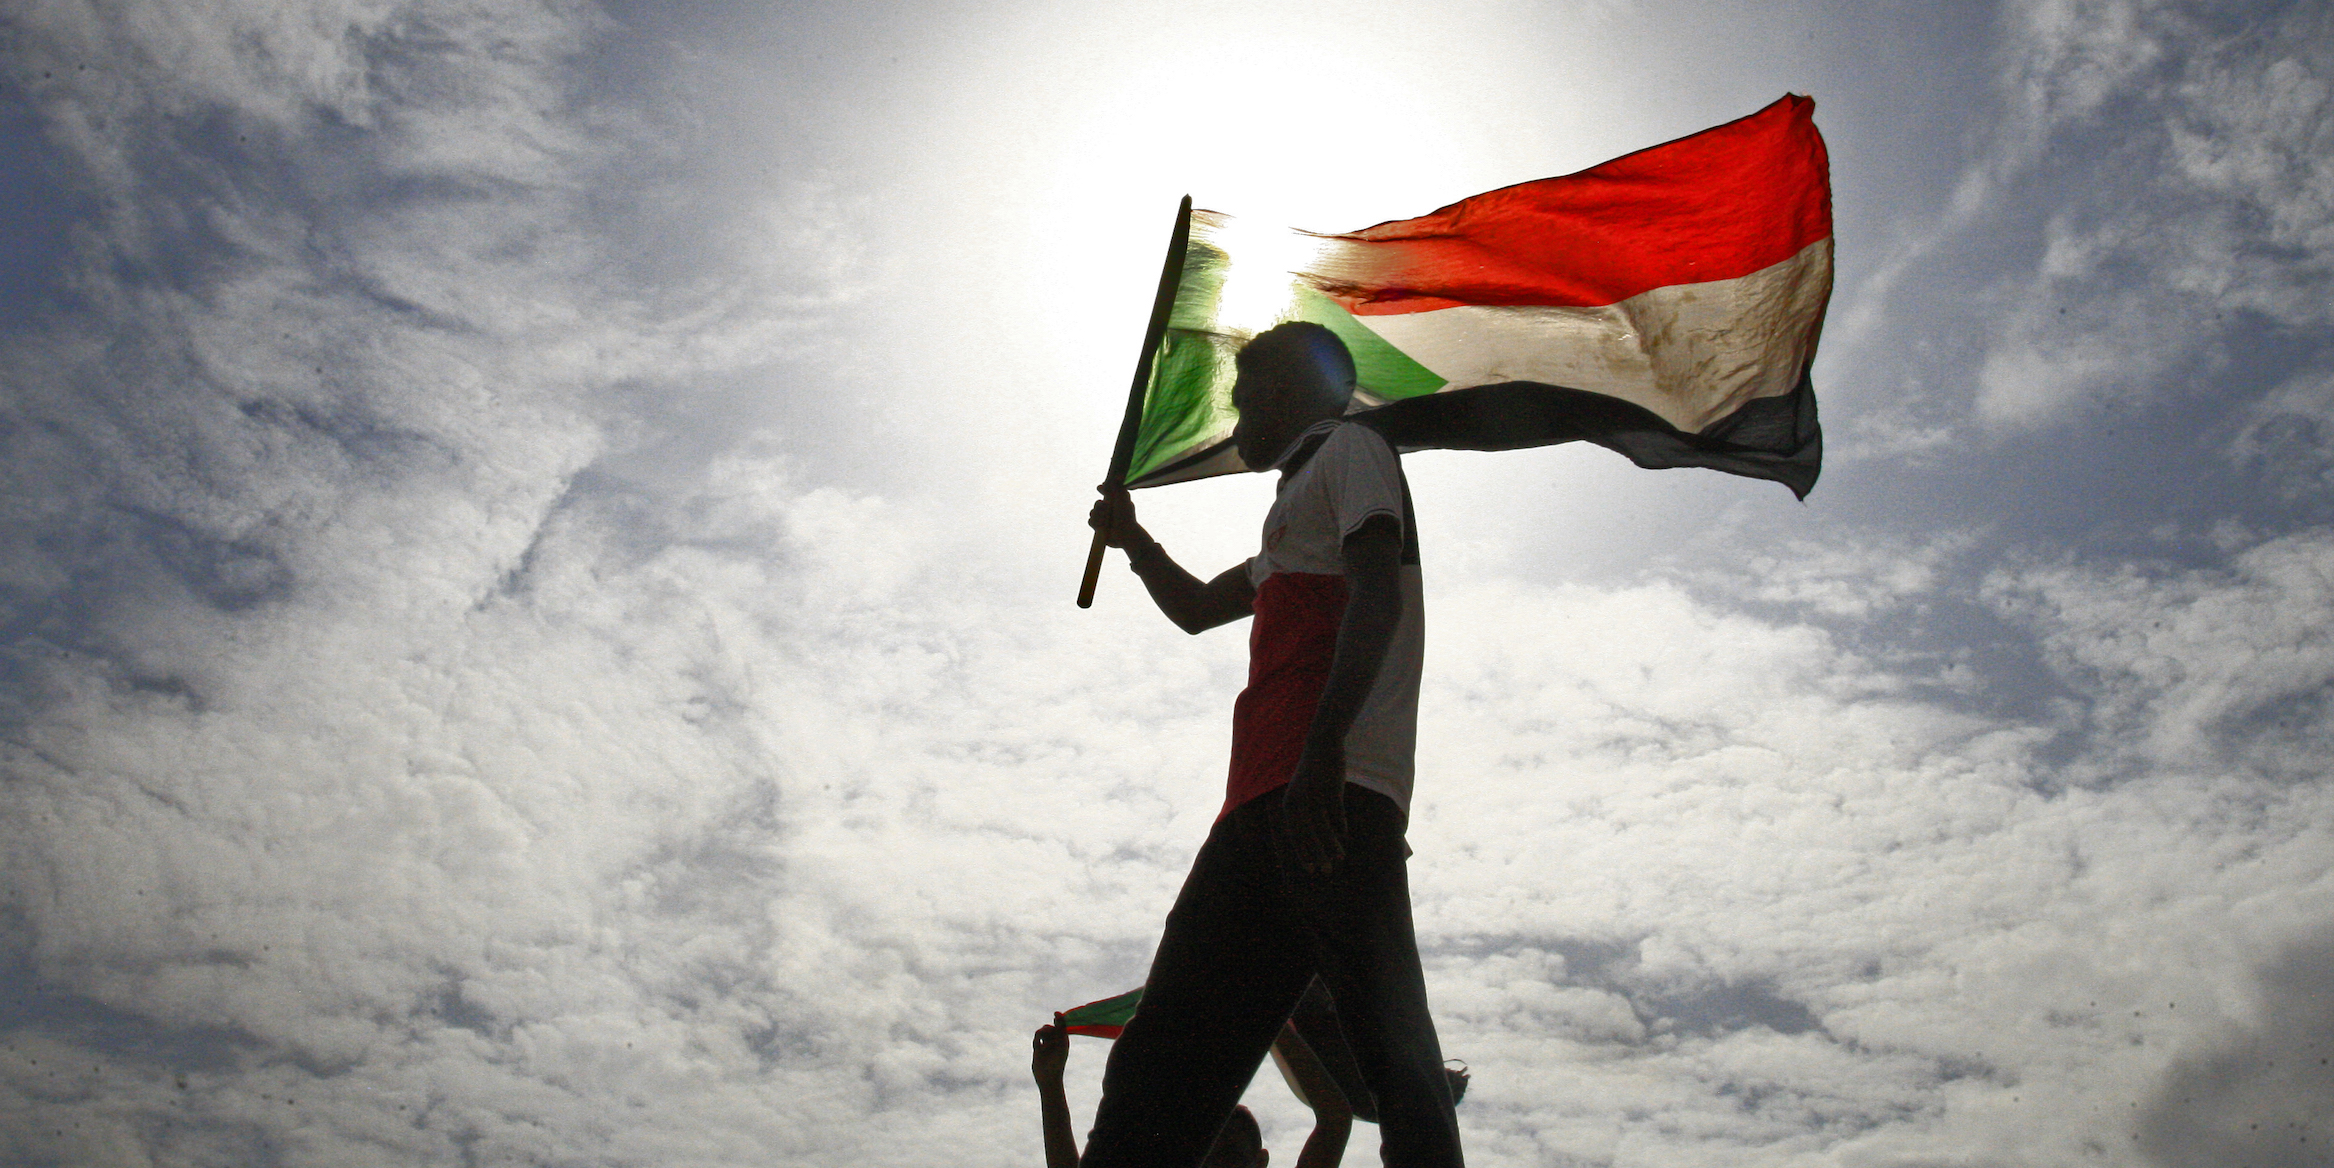 In this new Sudan, will the elite protesters stand up for suffering Darfur?